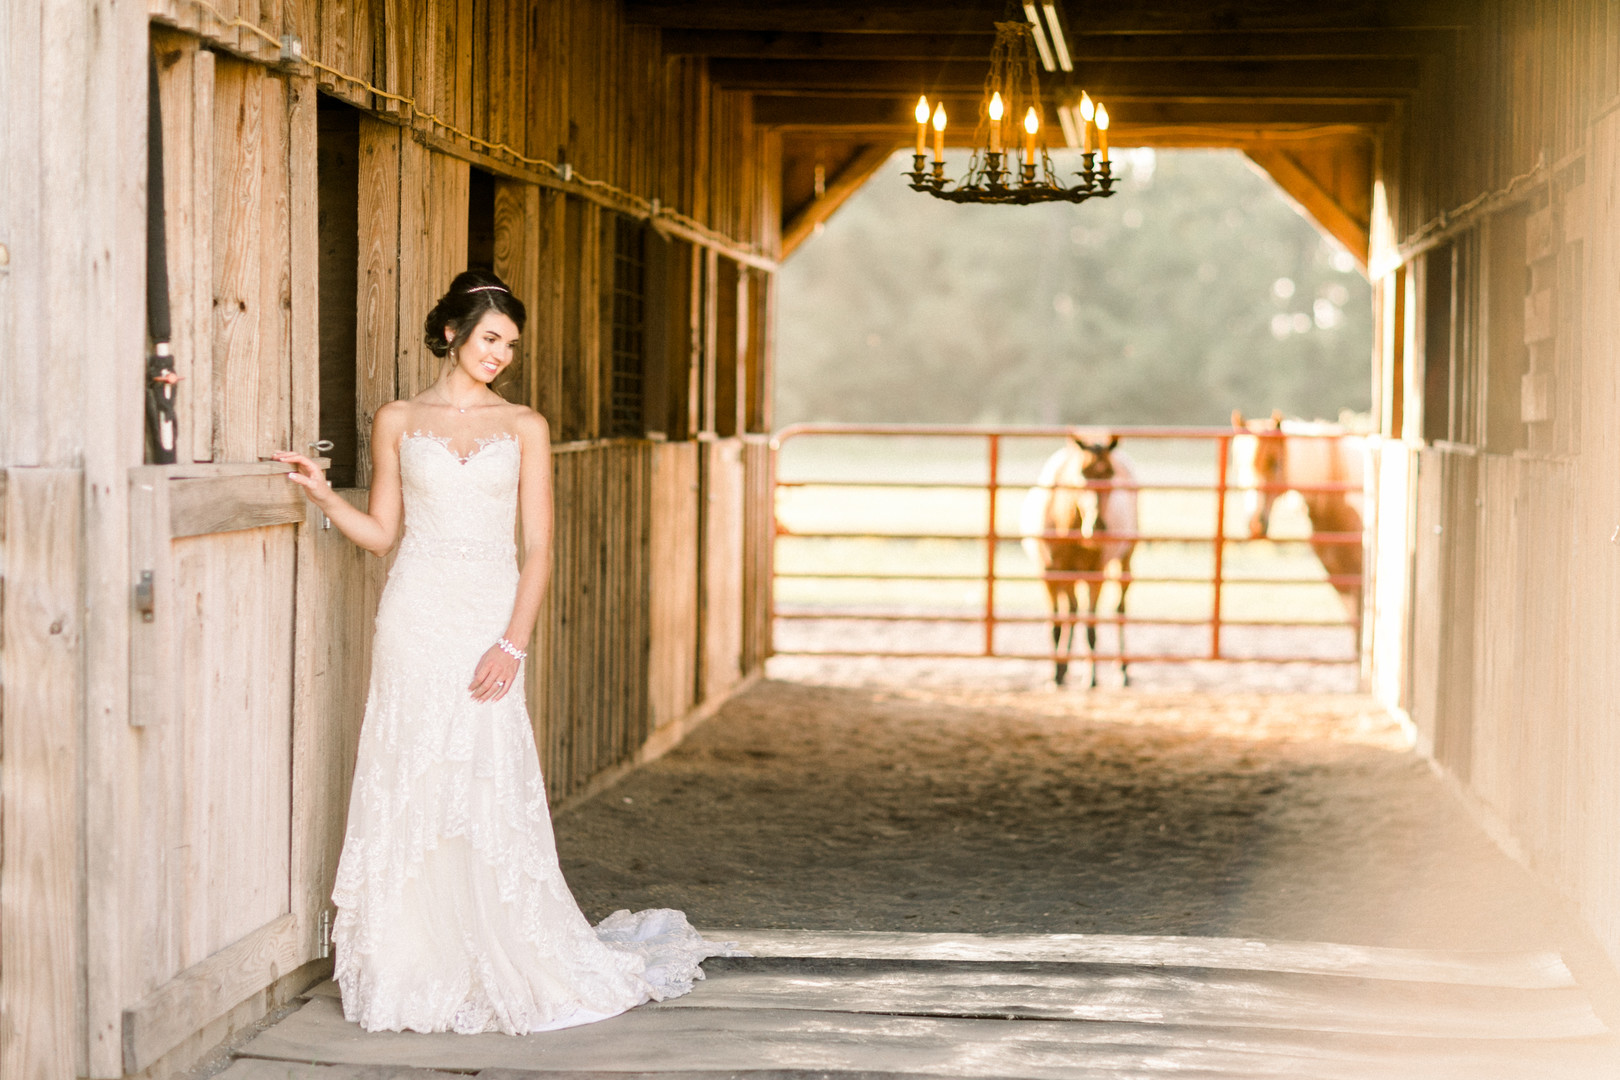 Bride photos in a horse stable